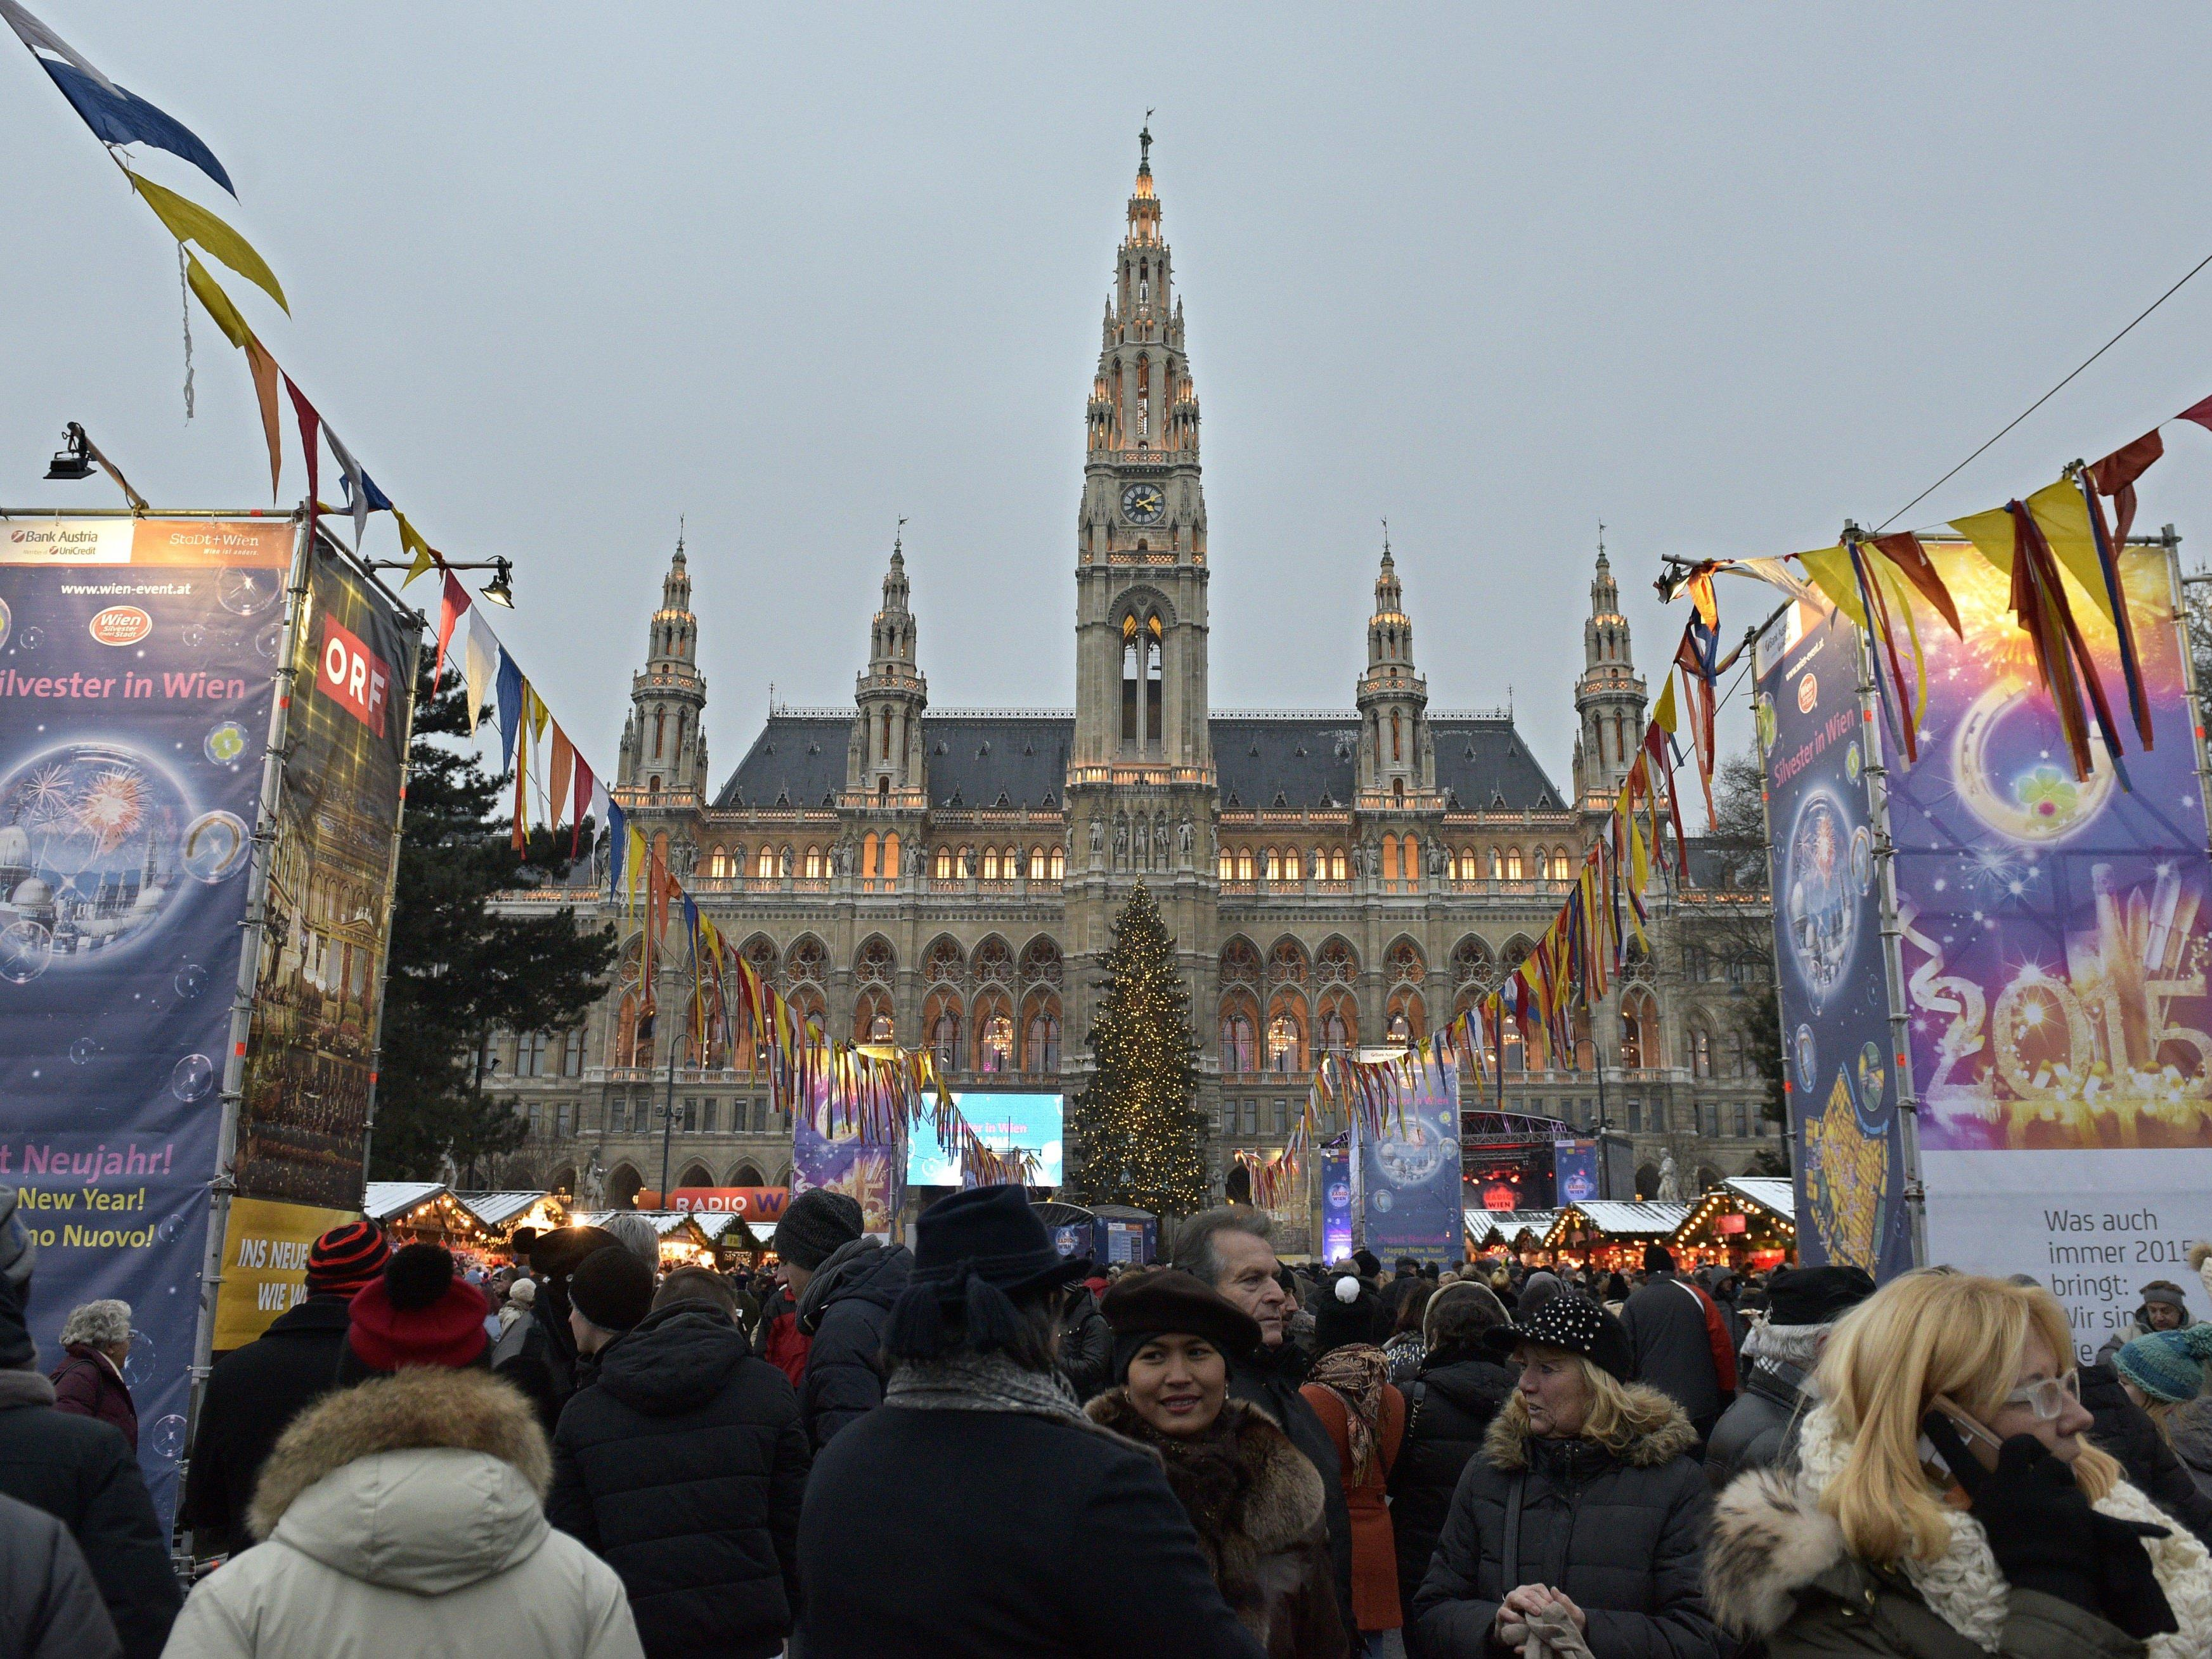 The New Year Celebrations in Vienna on 31 December 2016